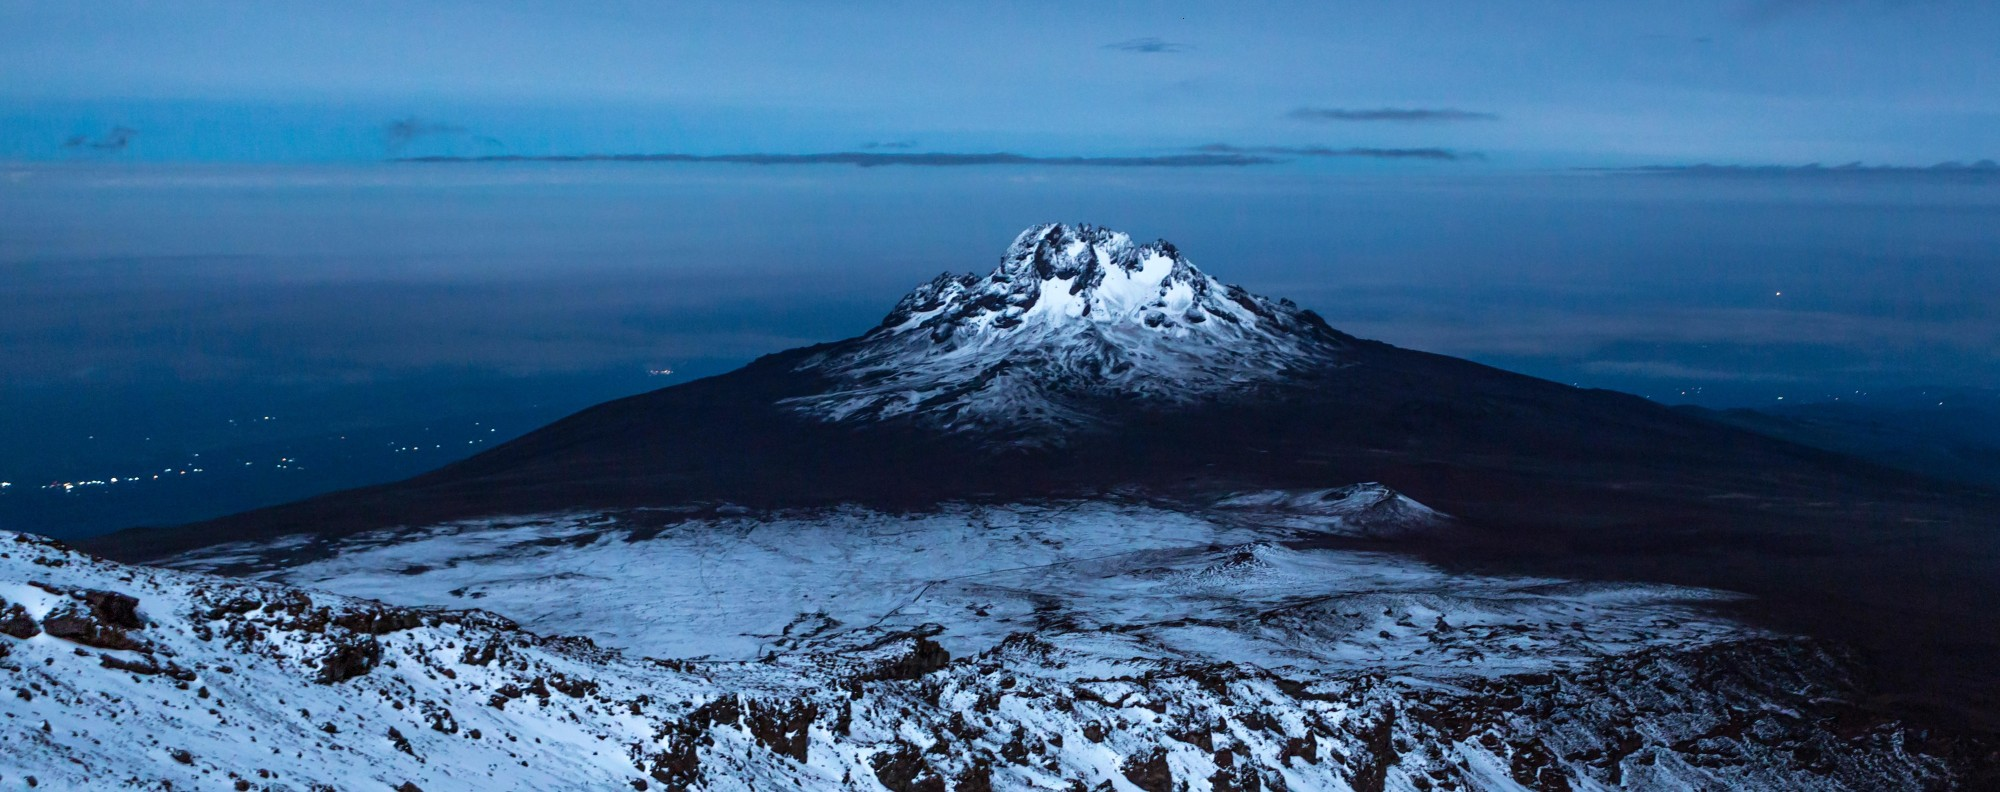 Mount Kilimanjaro during a full moon. Picture: Alamy